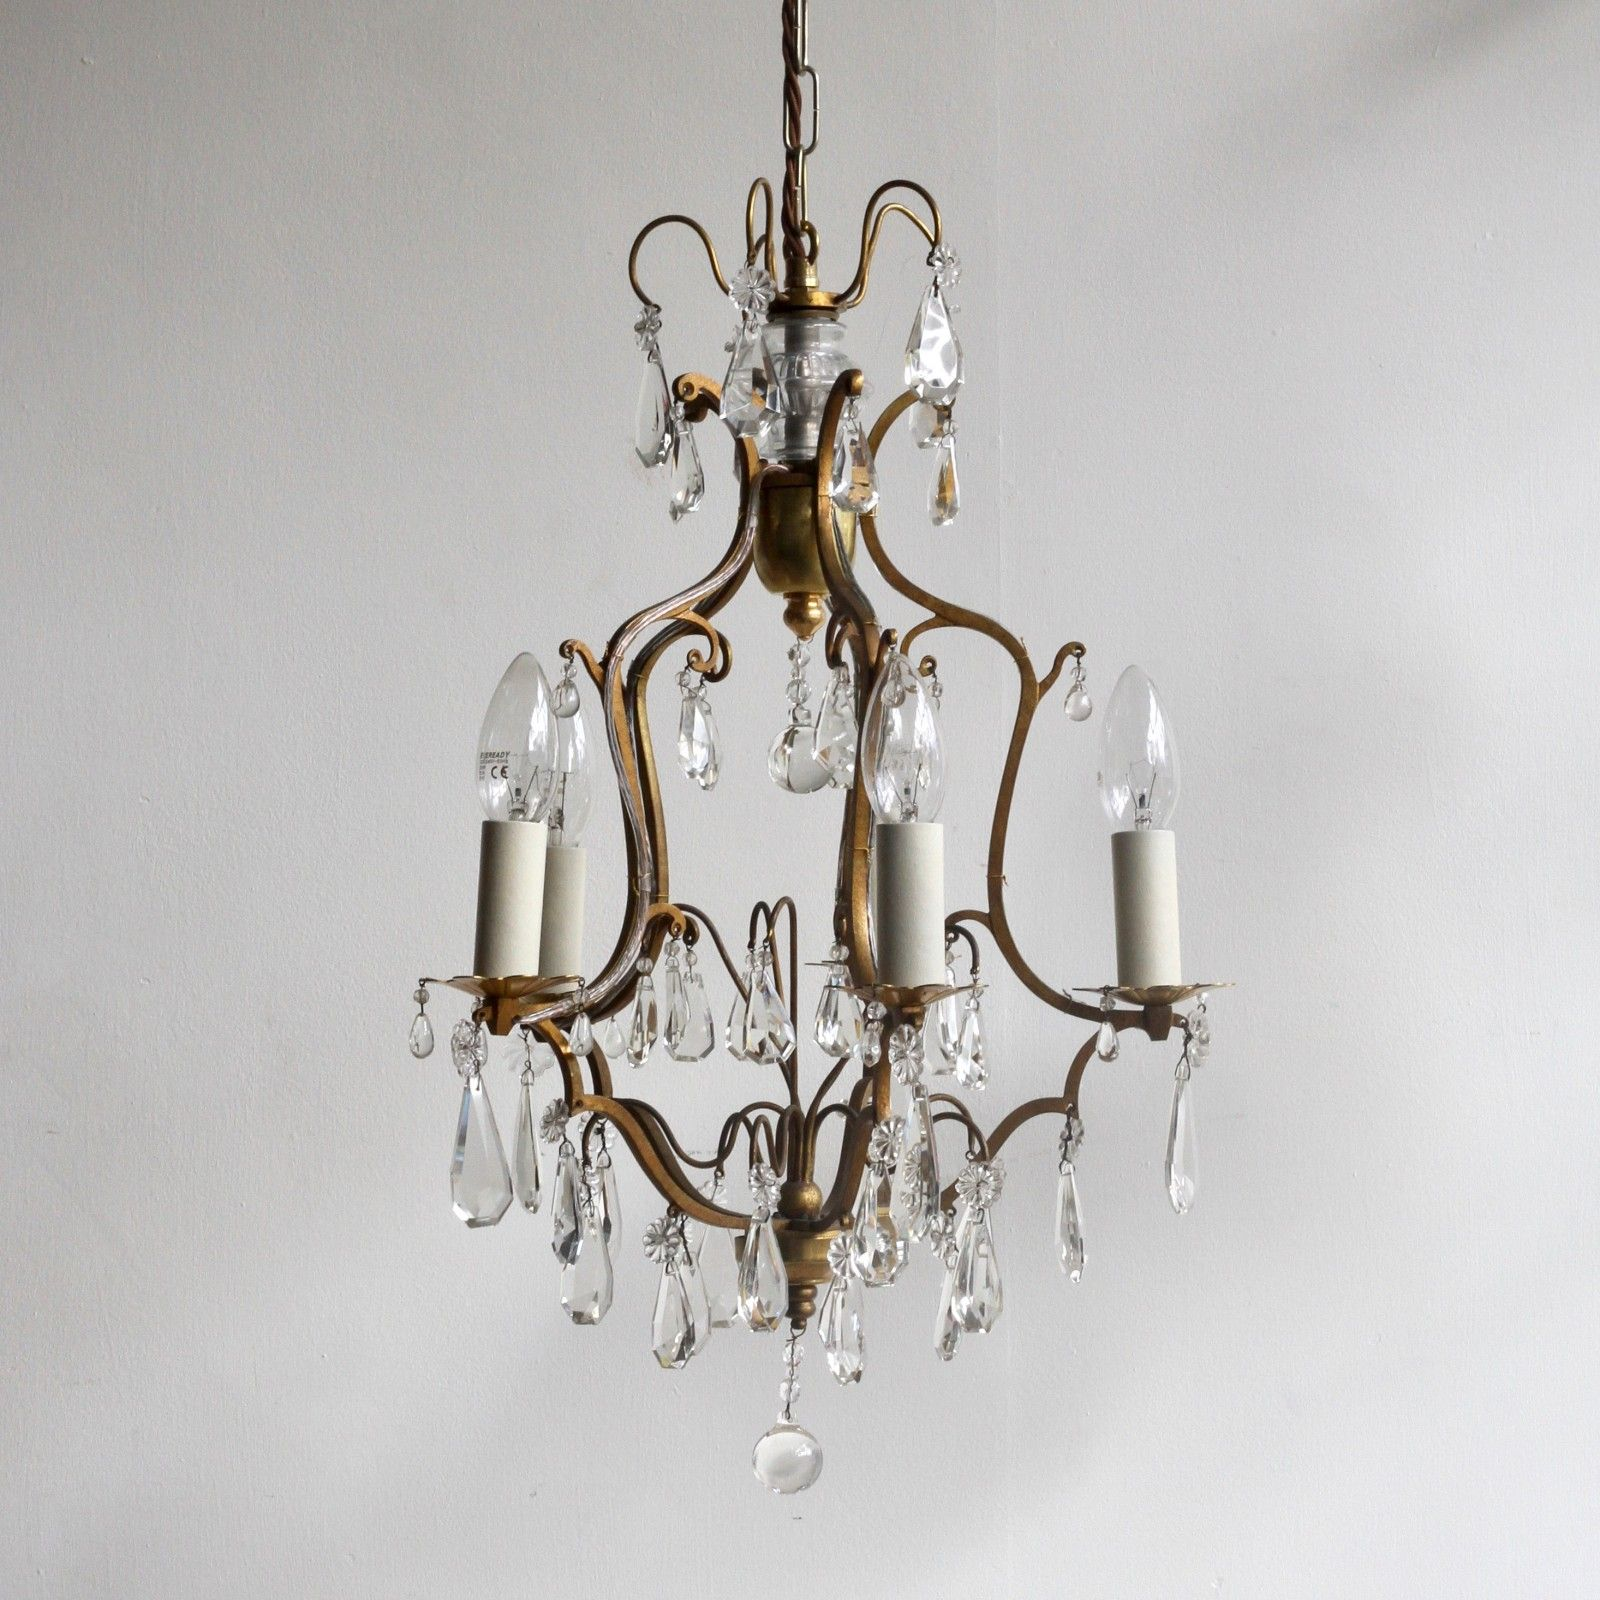 Petite gilt brass birdcage chandelier with crystal drops